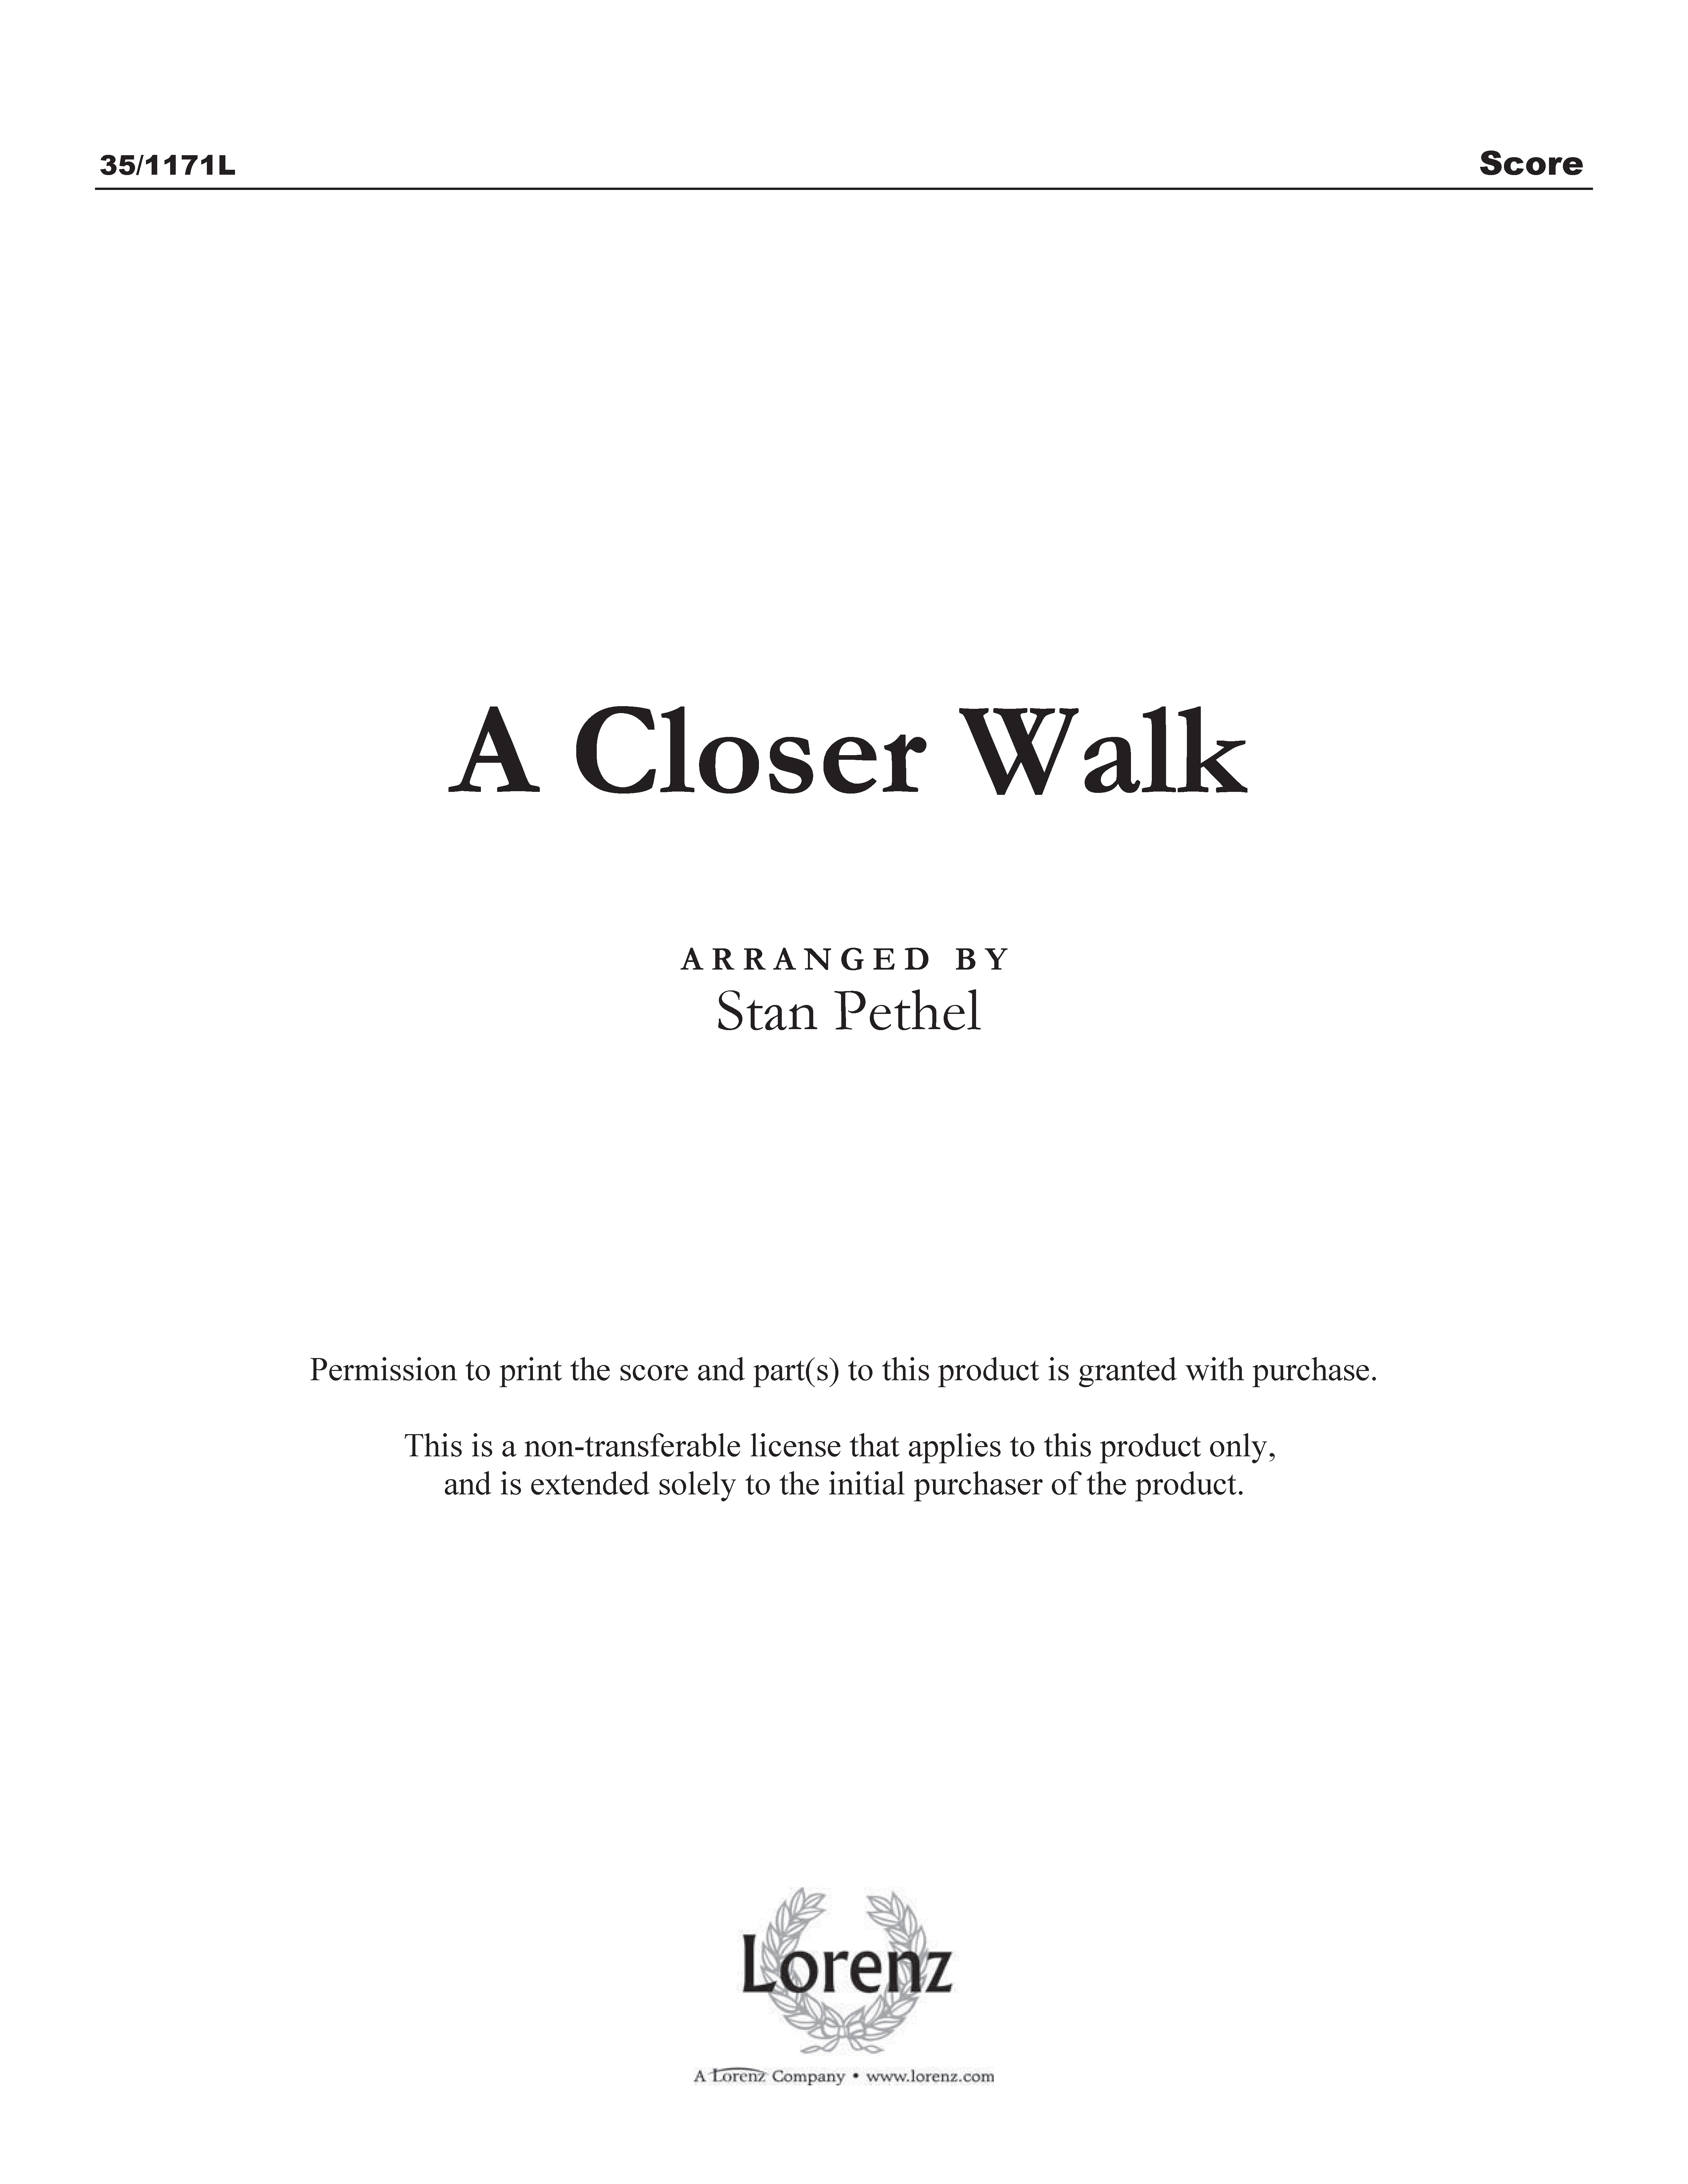 A Closer Walk (Digital Delivery)